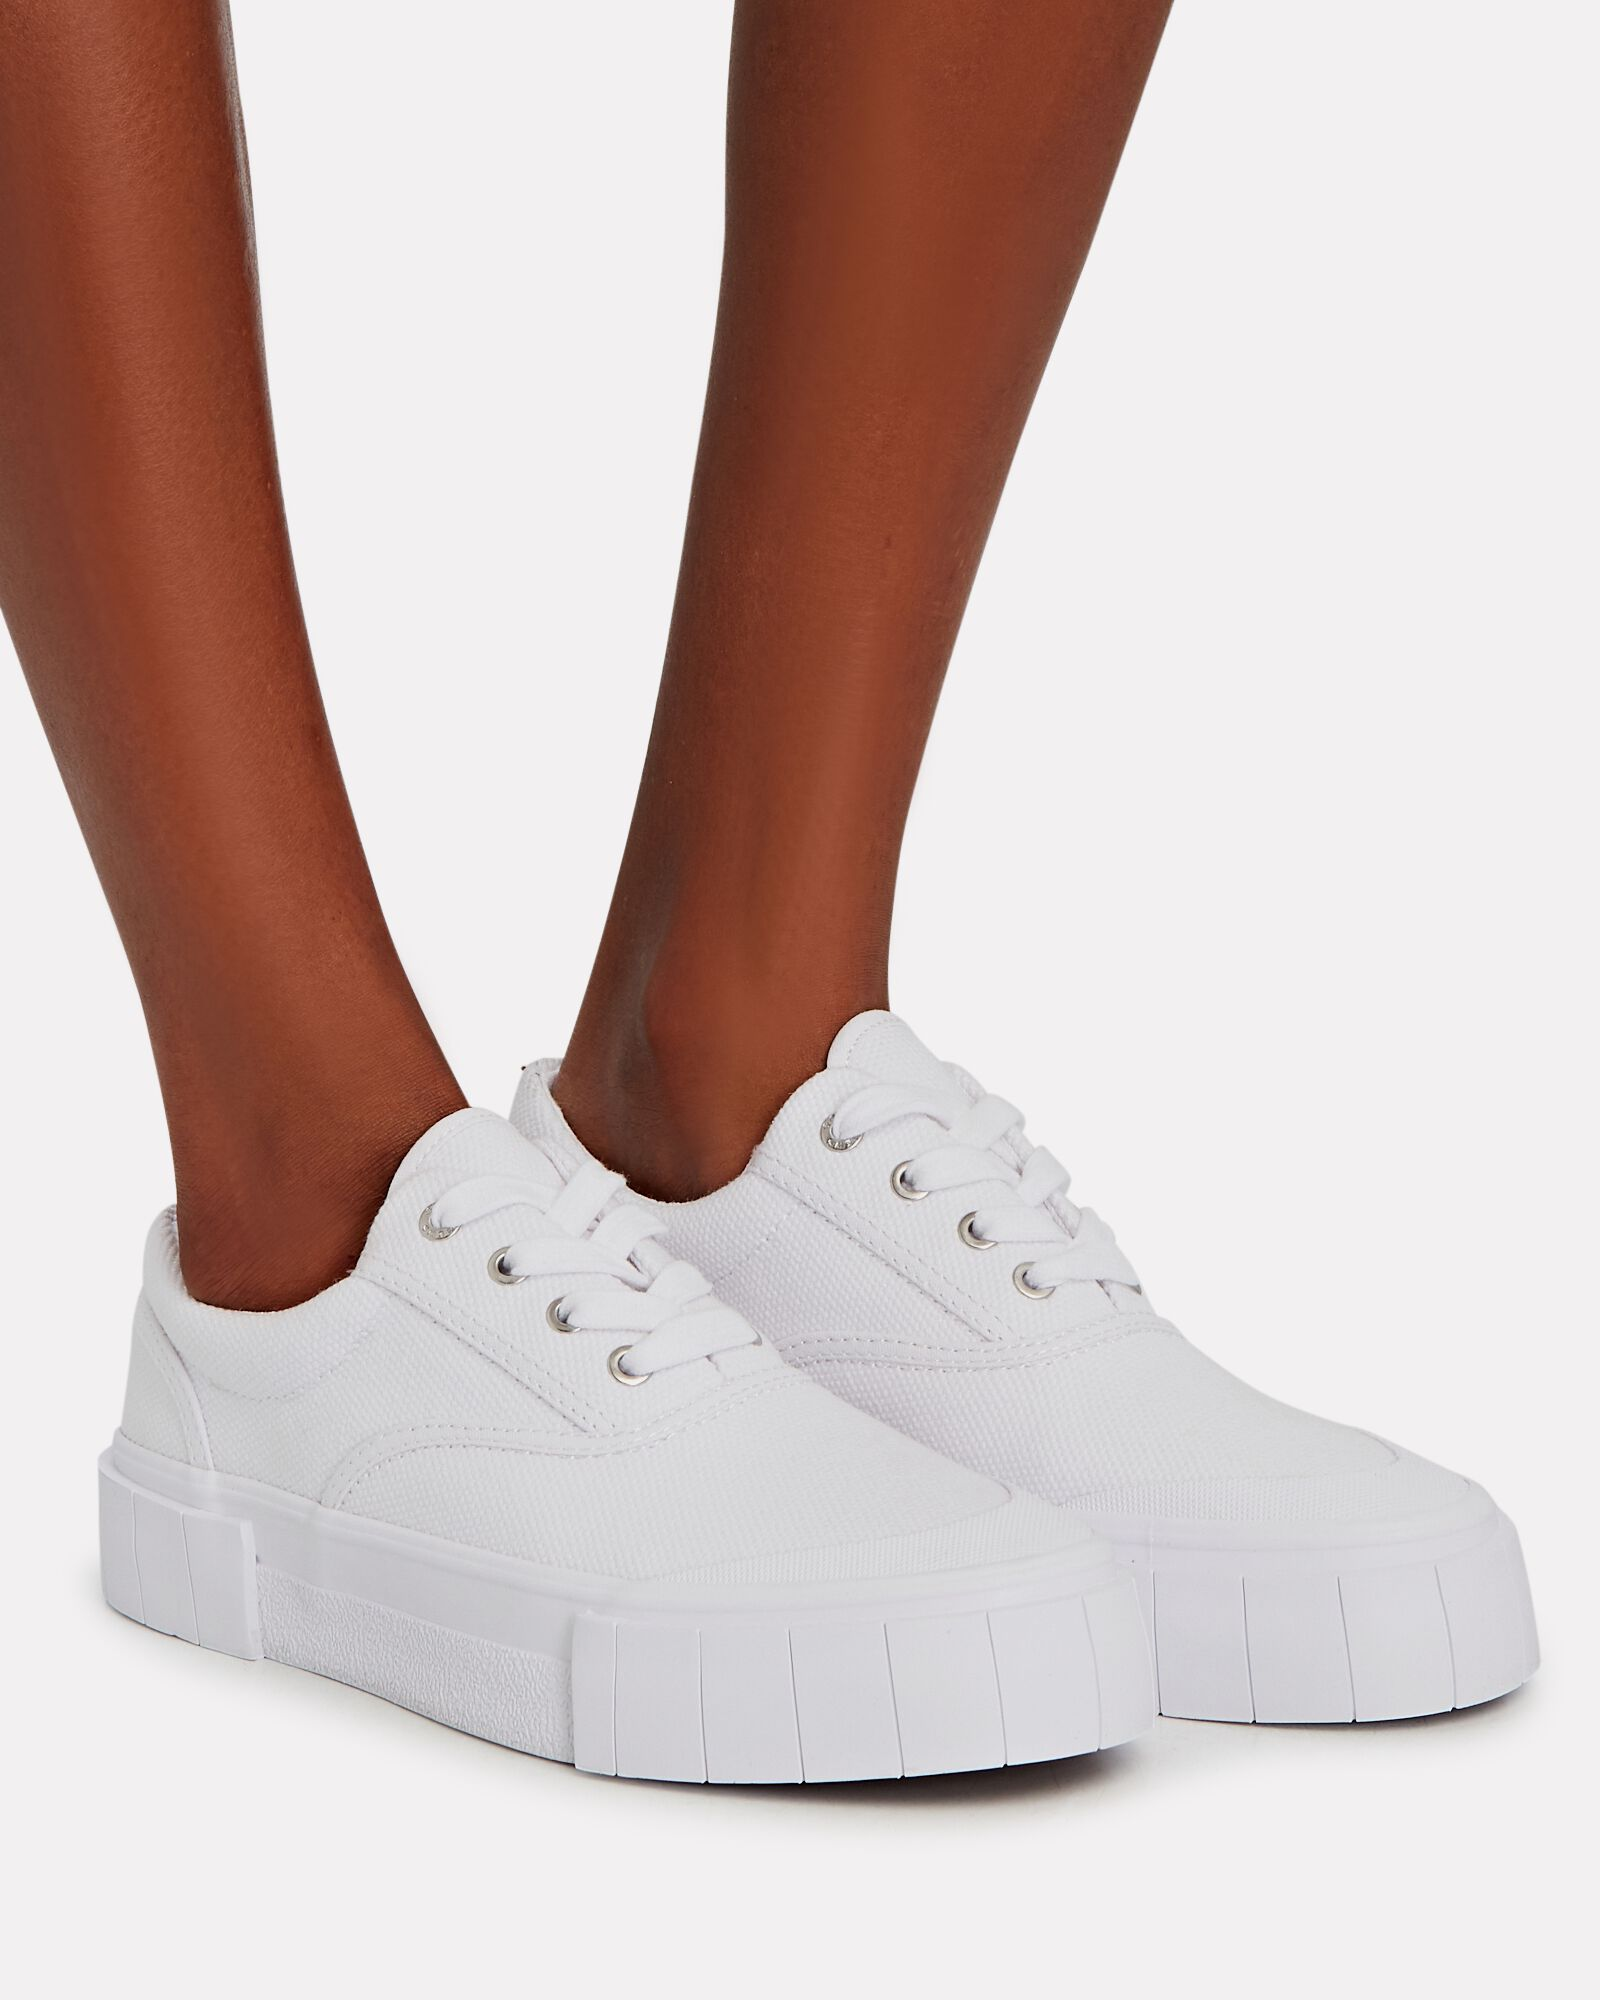 Opal Canvas Low-Top Sneakers, WHITE, hi-res